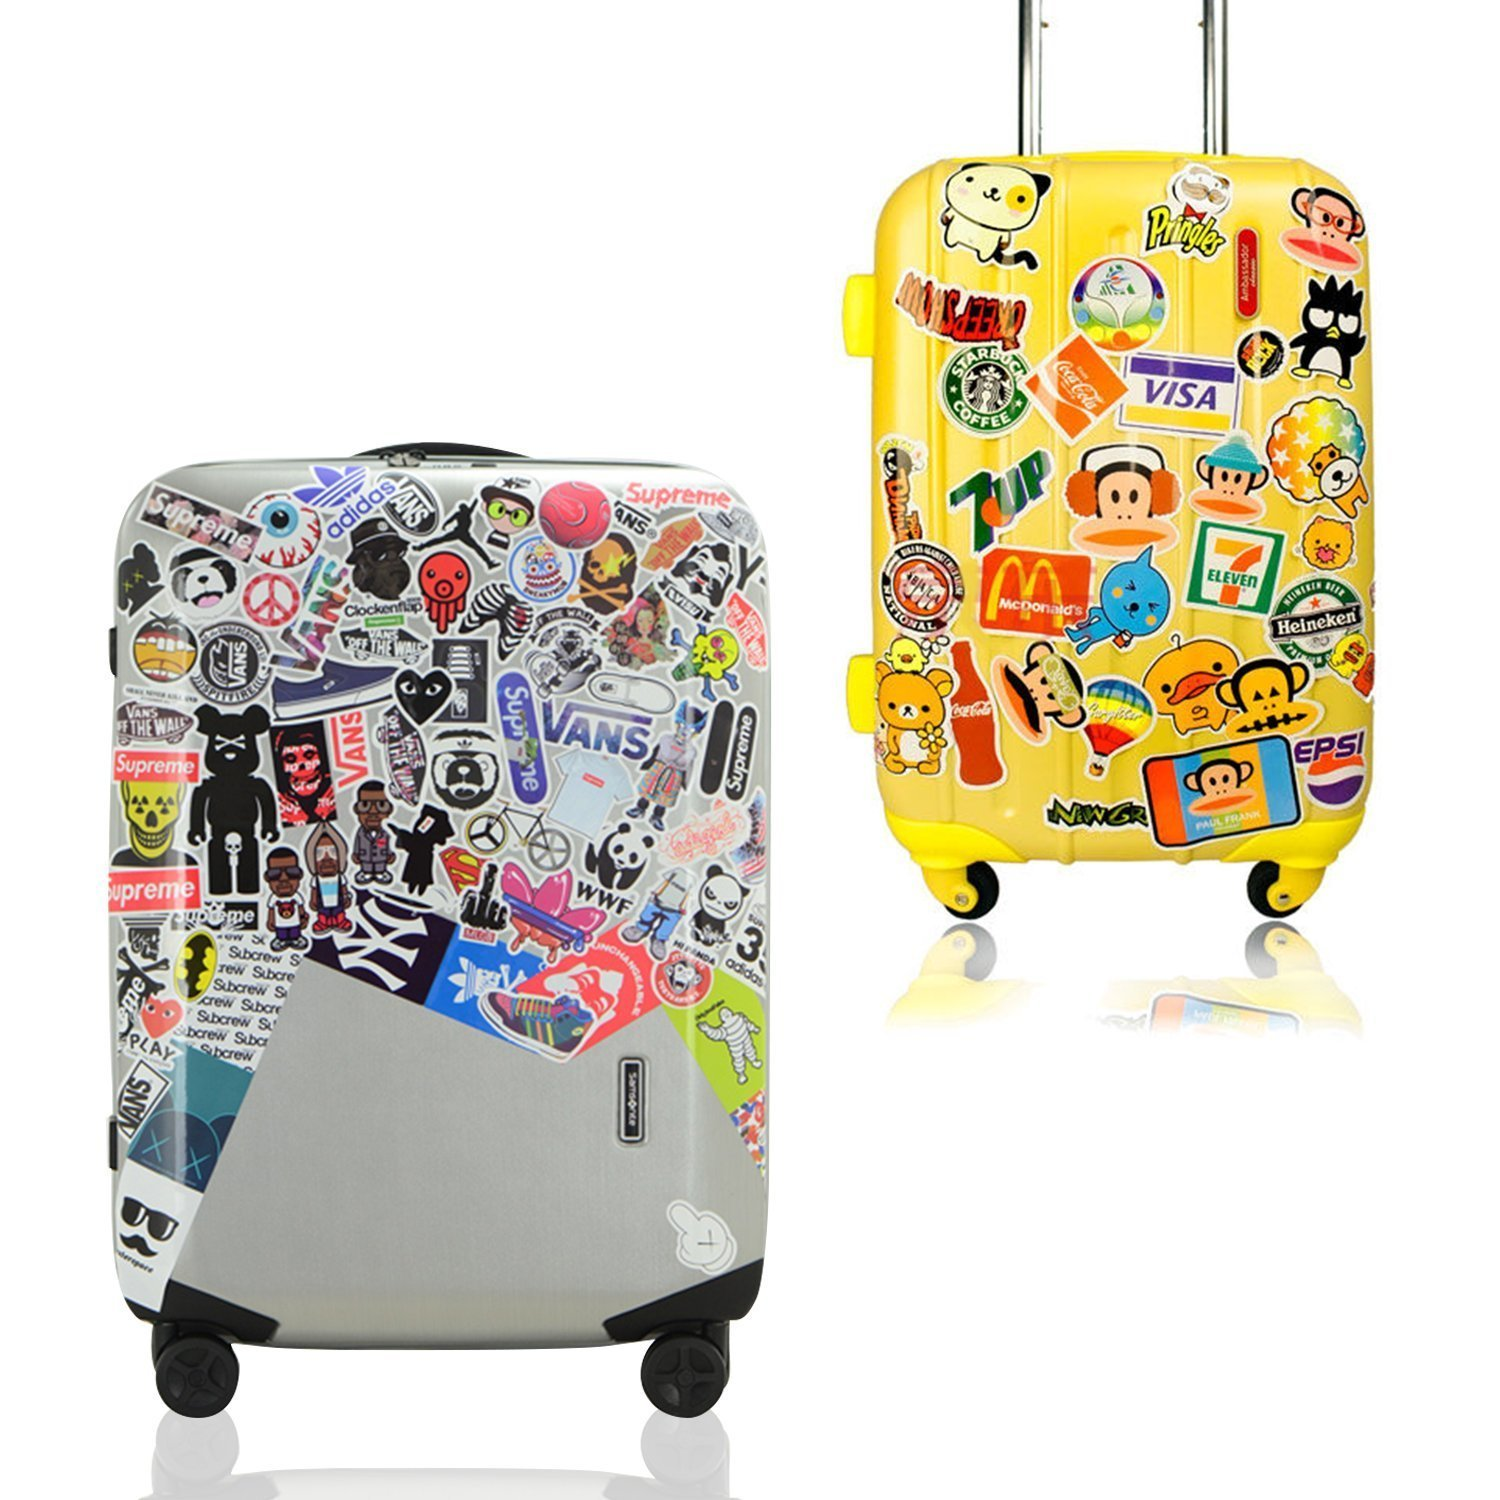 Sticker Pack [200pcs],Sanmatic Sticker Decals Vinyls for Laptop,Kids,Cars,Motorcycle,Bicycle,Skateboard Luggage,Bumper Stickers Decals Bomb Waterproof.